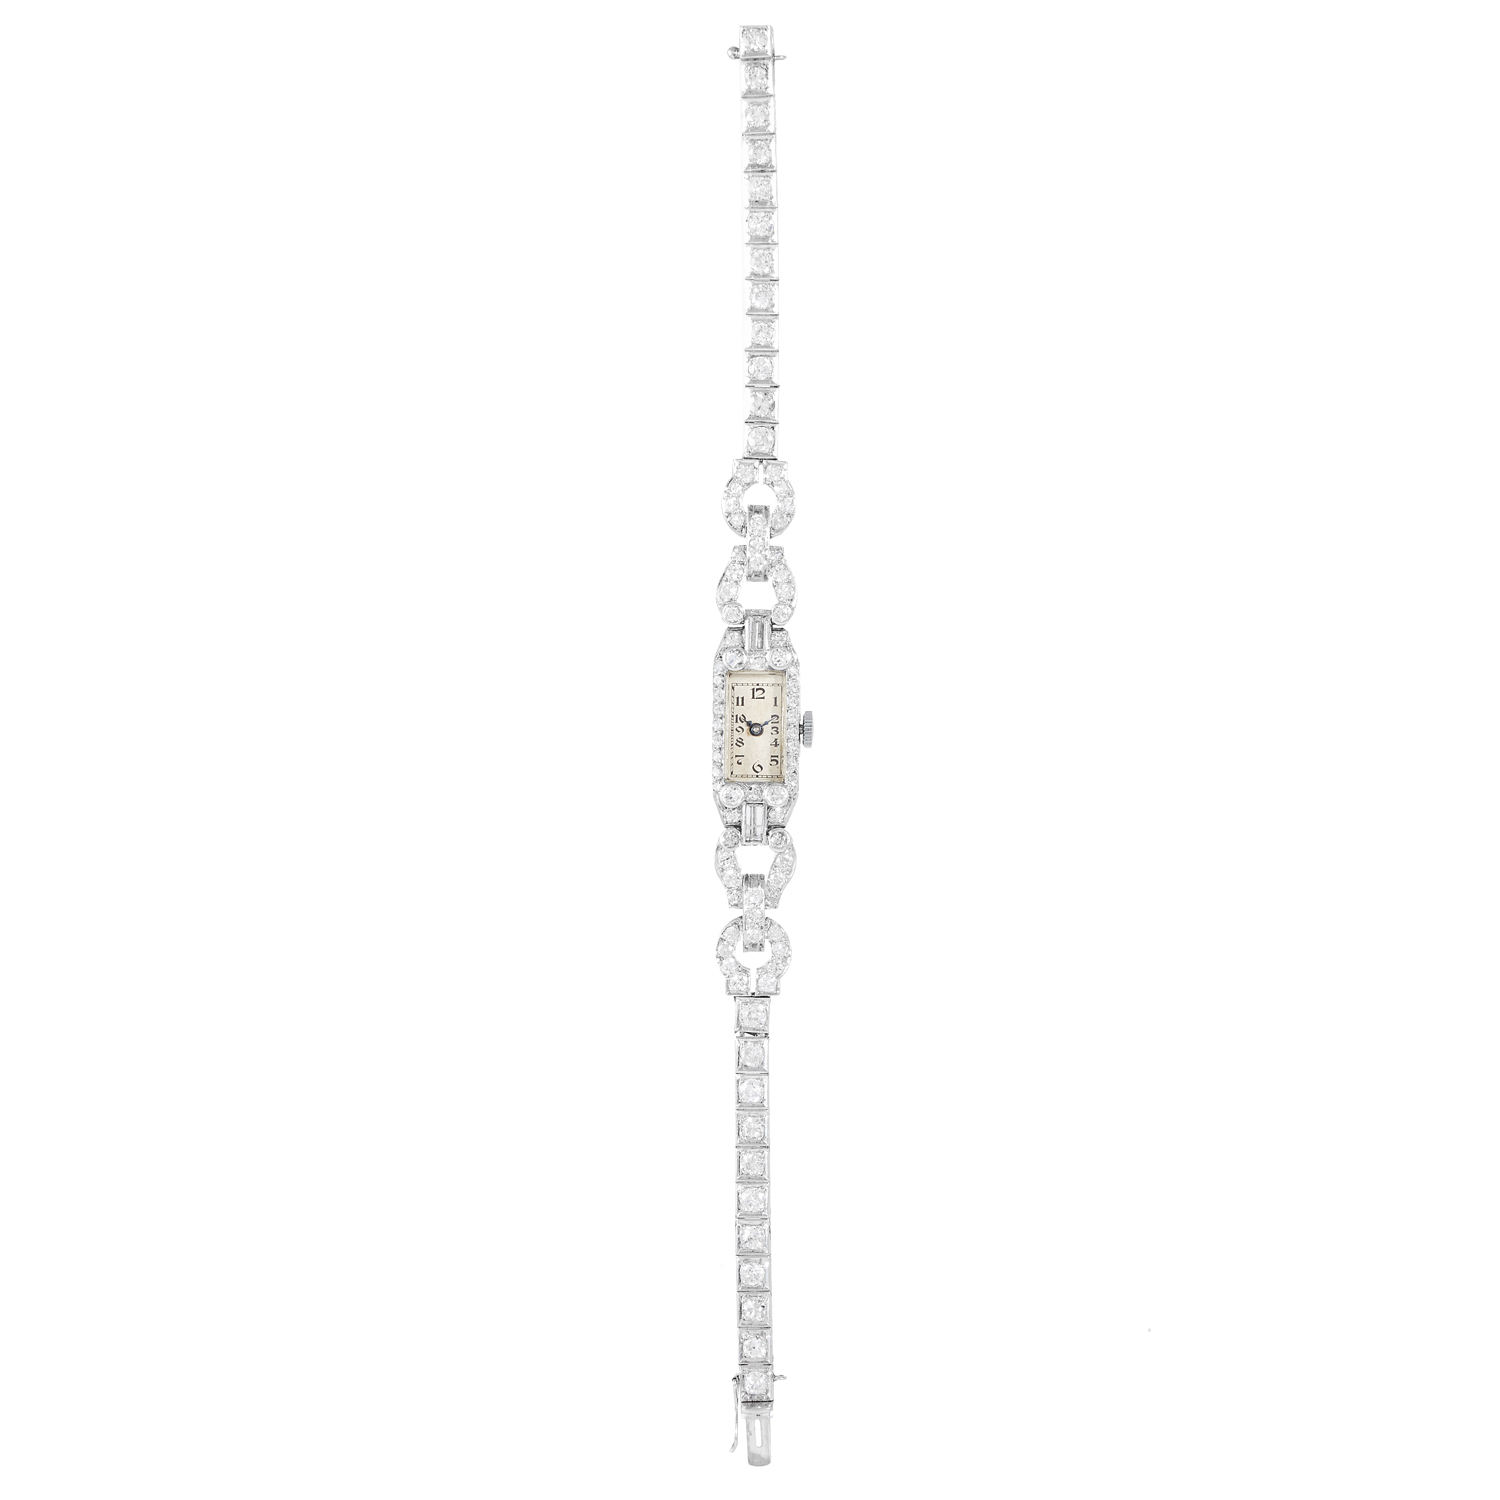 Los 273 - AN ART DECO DIAMOND COCKTAIL WATCH in white gold or platinum, set with round, baguette and single